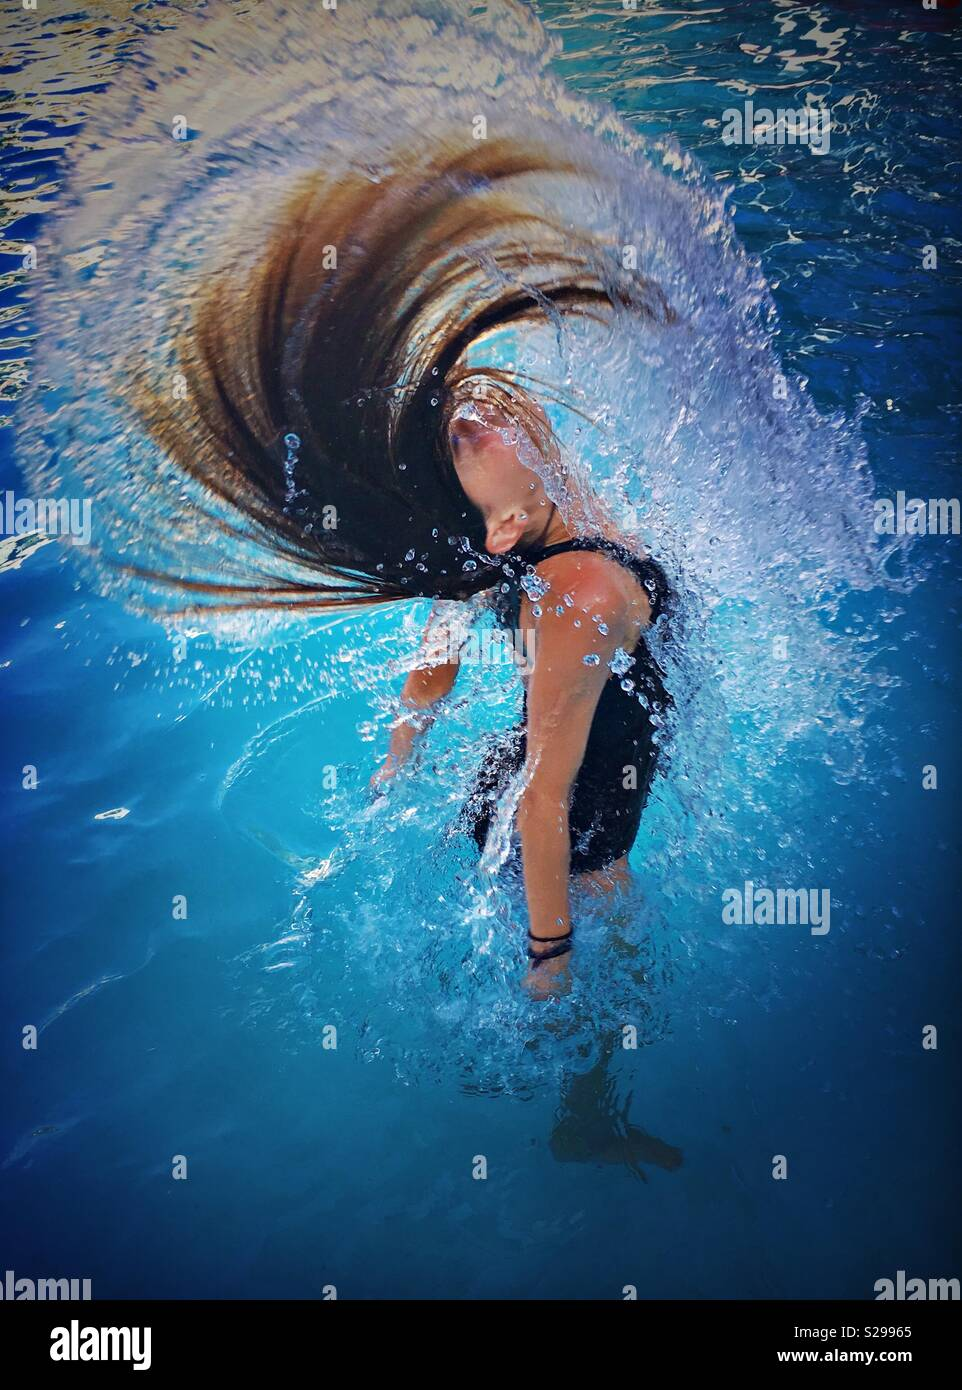 Girl flipping hair in water in pool. - Stock Image